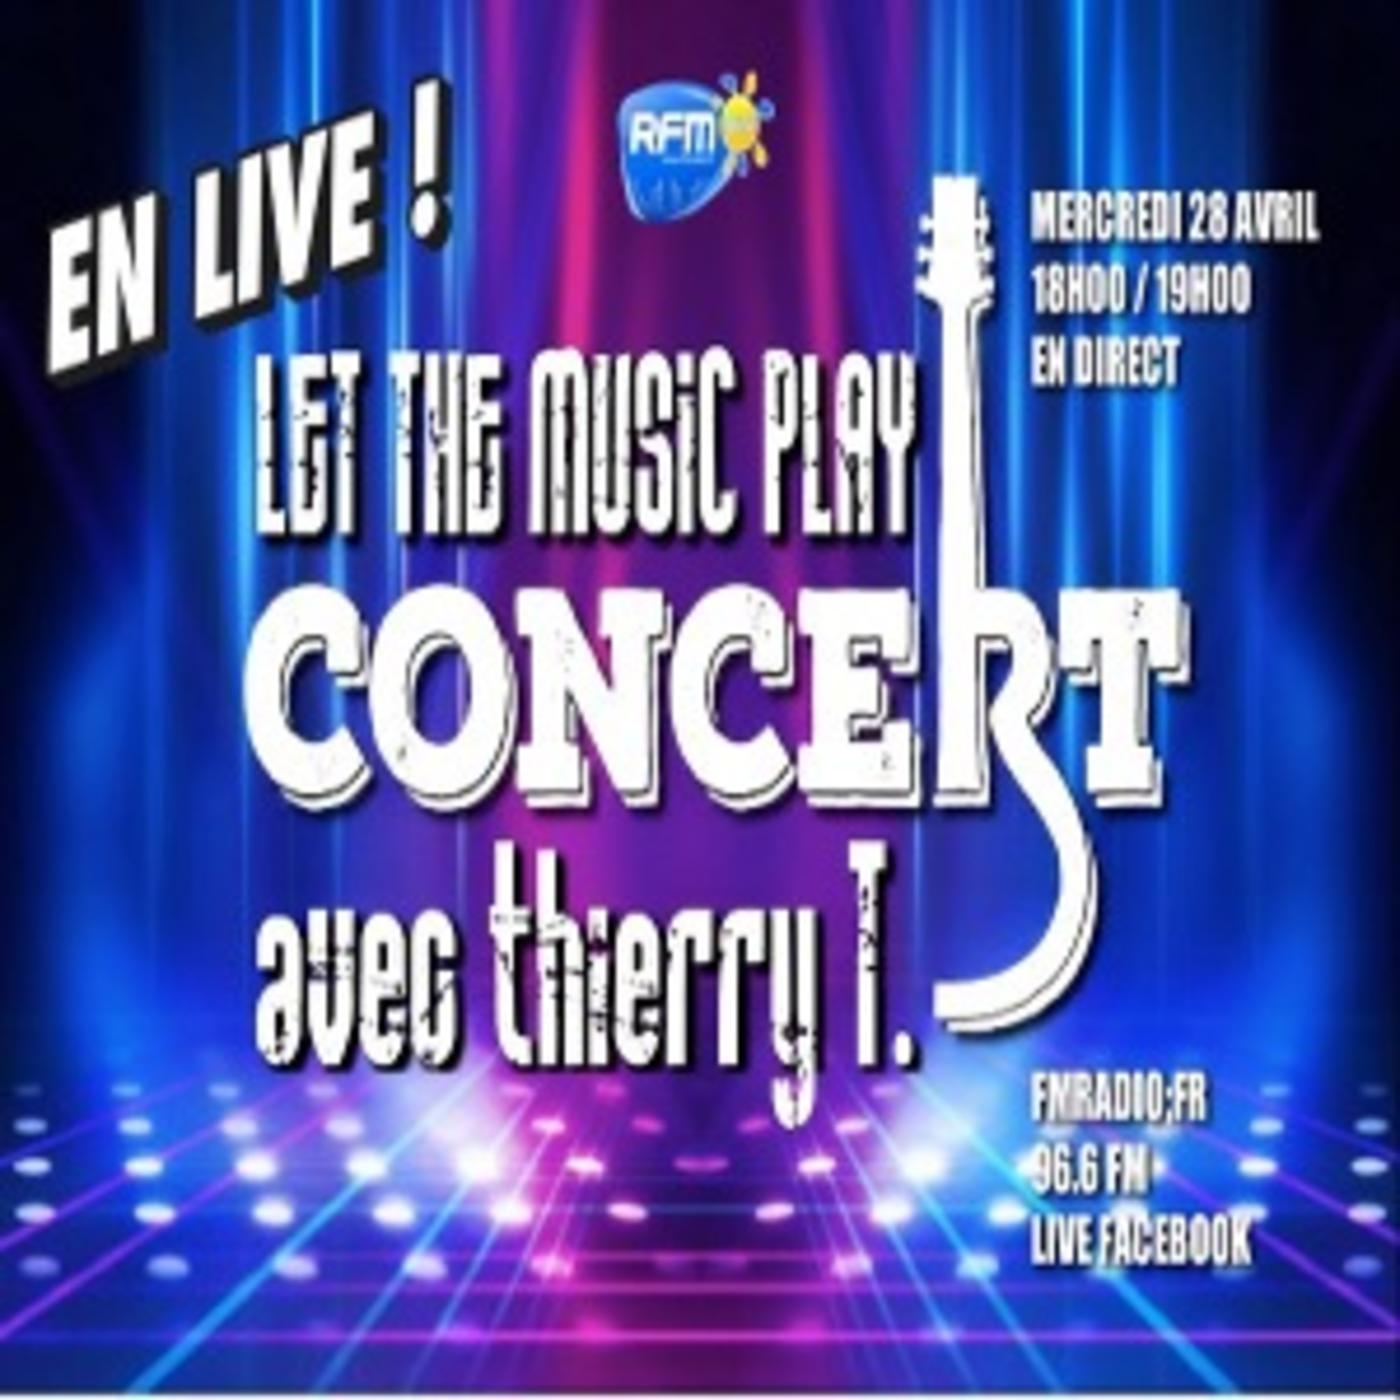 """Let the music play - Spécial concert """" Thierry Terranova """""""